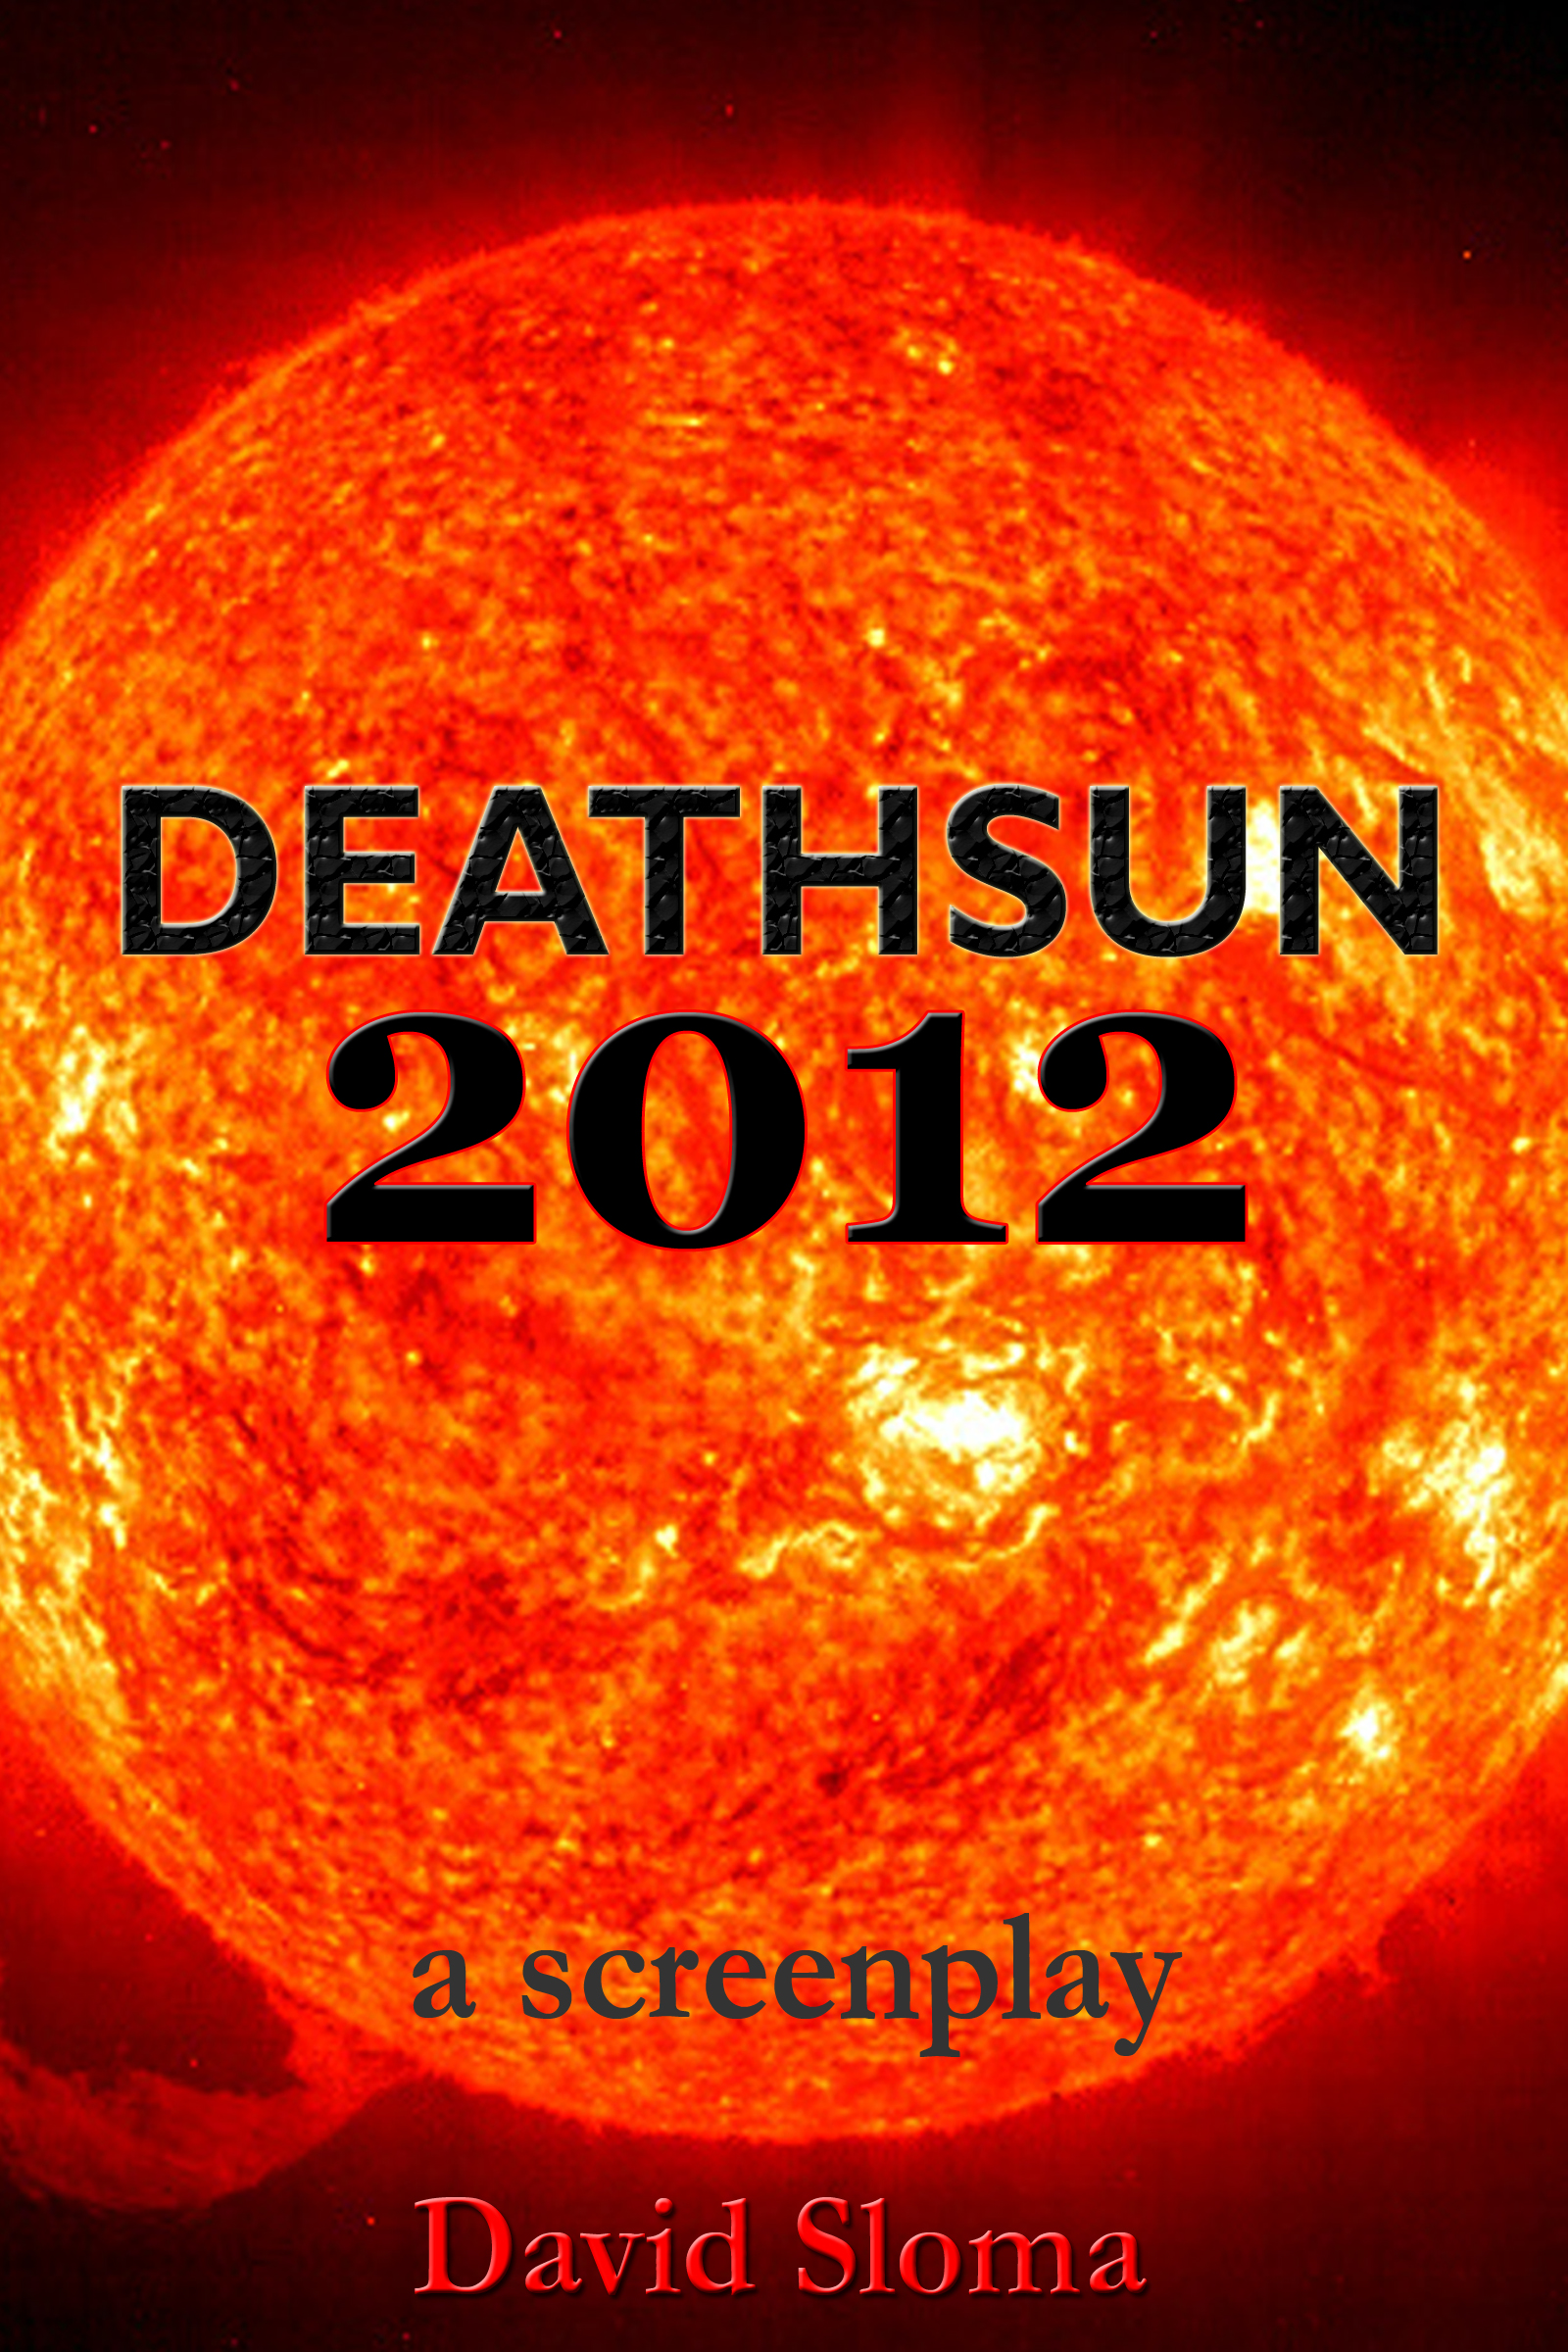 deathsun 2012 screen cover